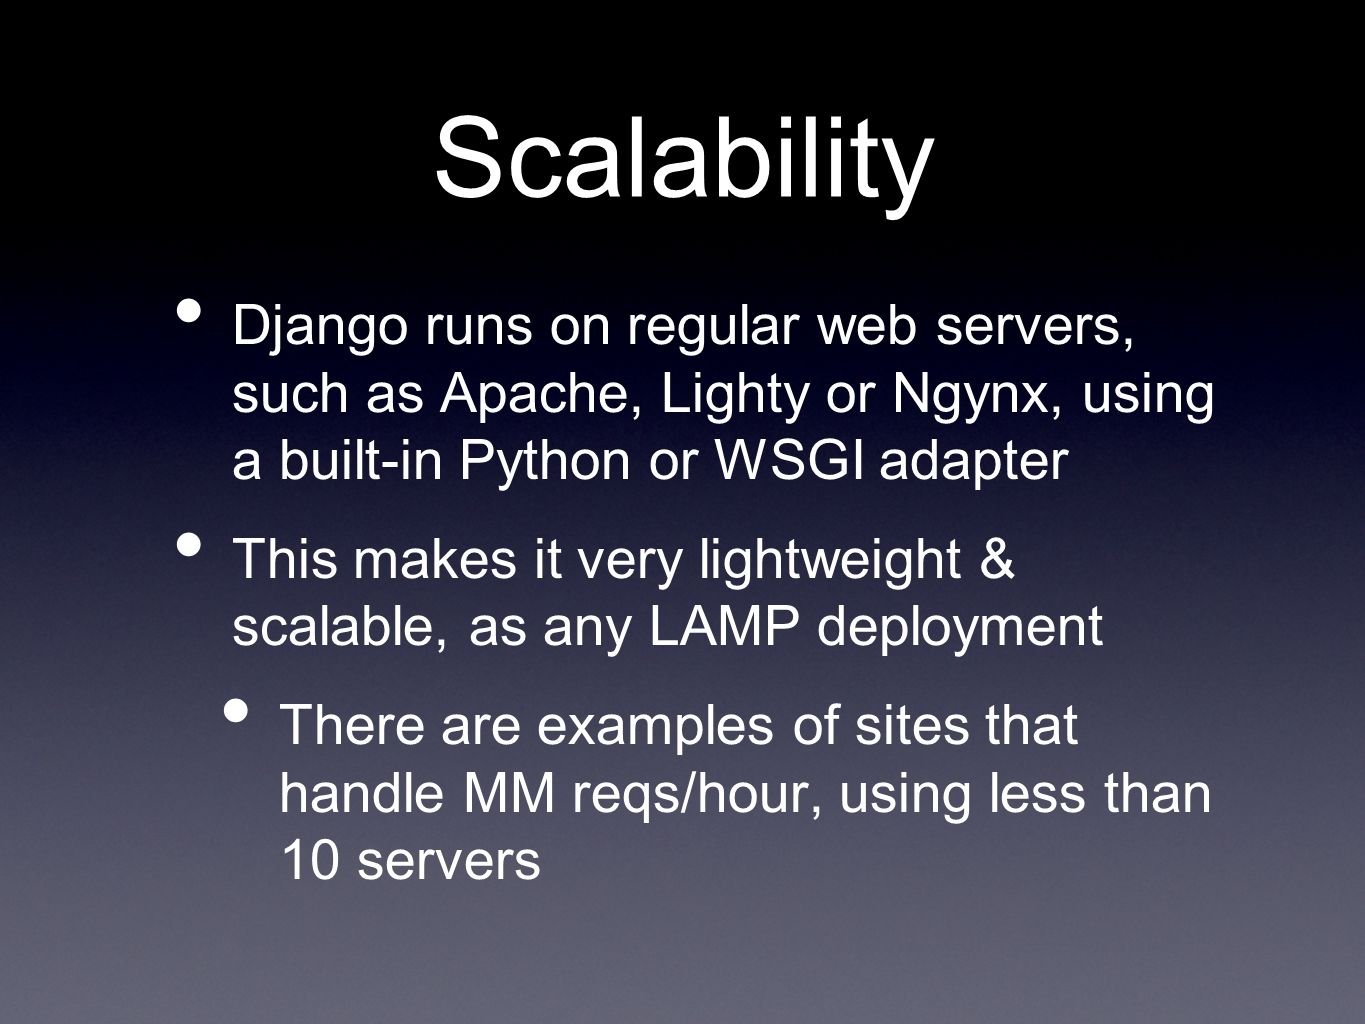 Scalability Django runs on regular web servers, such as Apache, Lighty or Ngynx, using a built-in Python or WSGI adapter This makes it very lightweight & scalable, as any LAMP deployment There are examples of sites that handle MM reqs/hour, using less than 10 servers